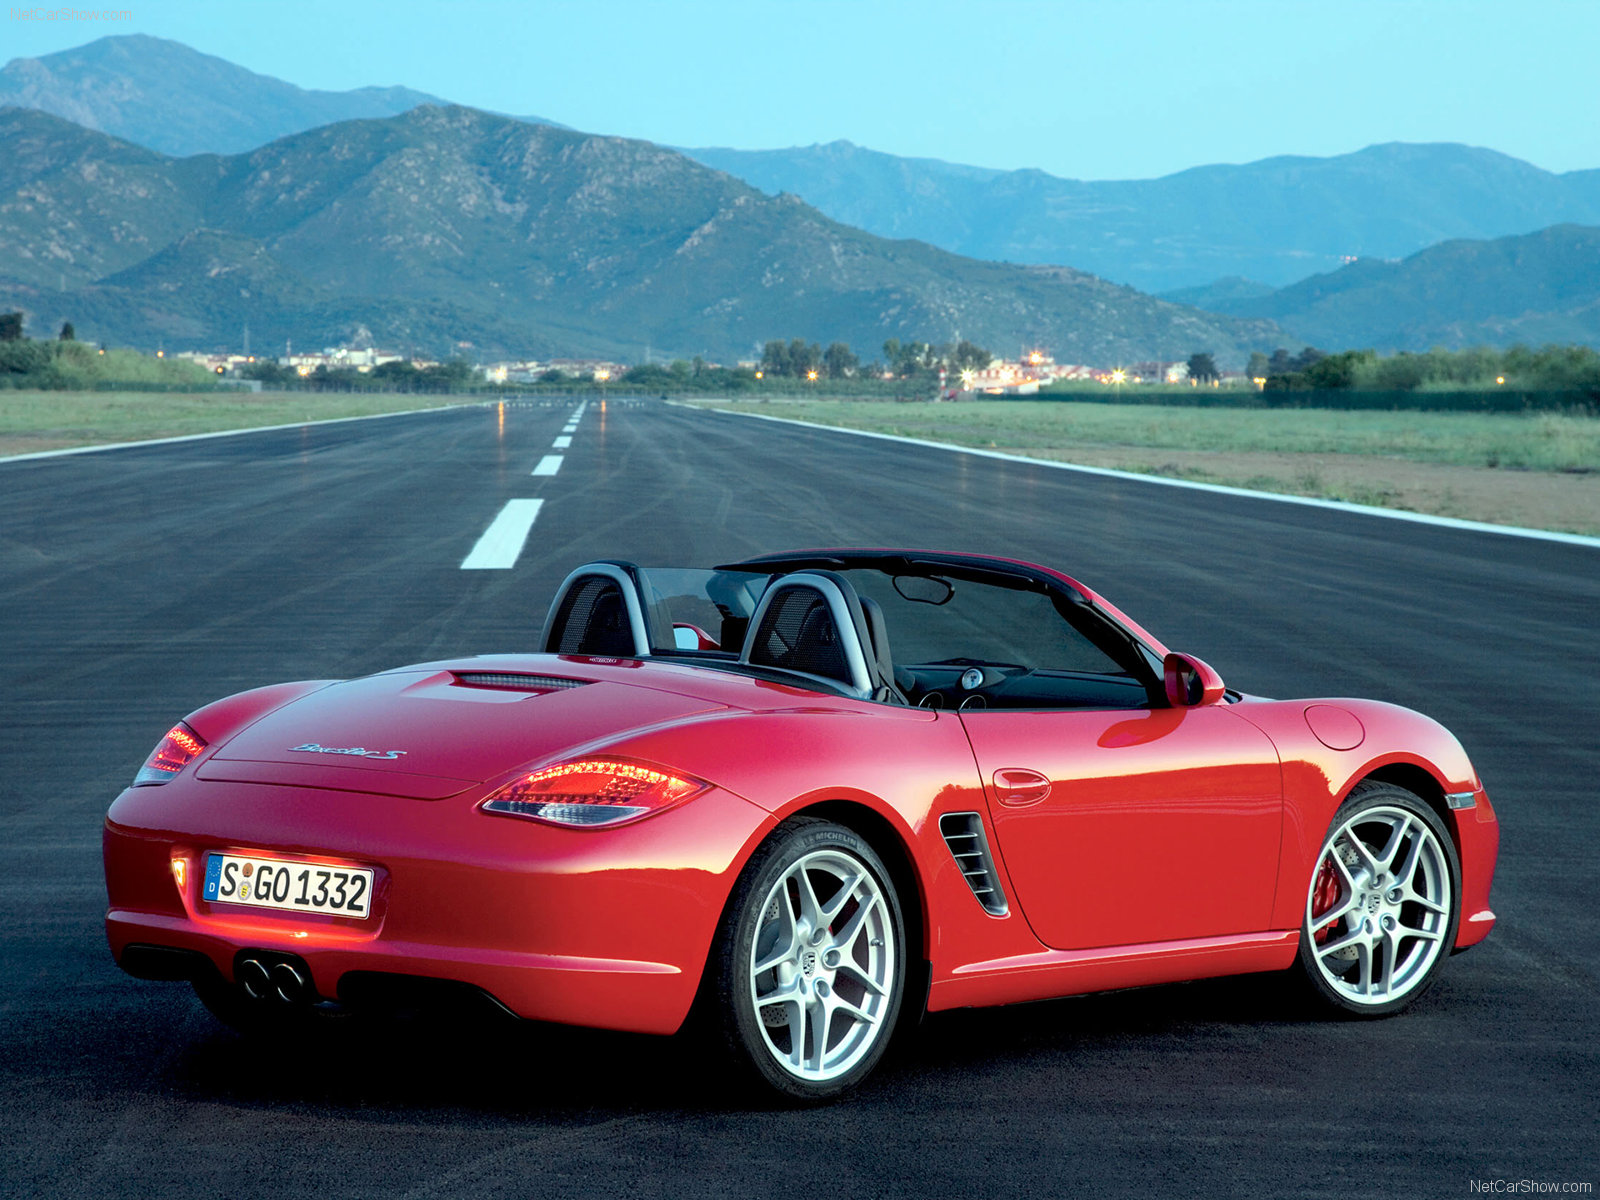 Porsche Boxster Wallpaper Hd 2009 Porsche Boxster S Wallpapers